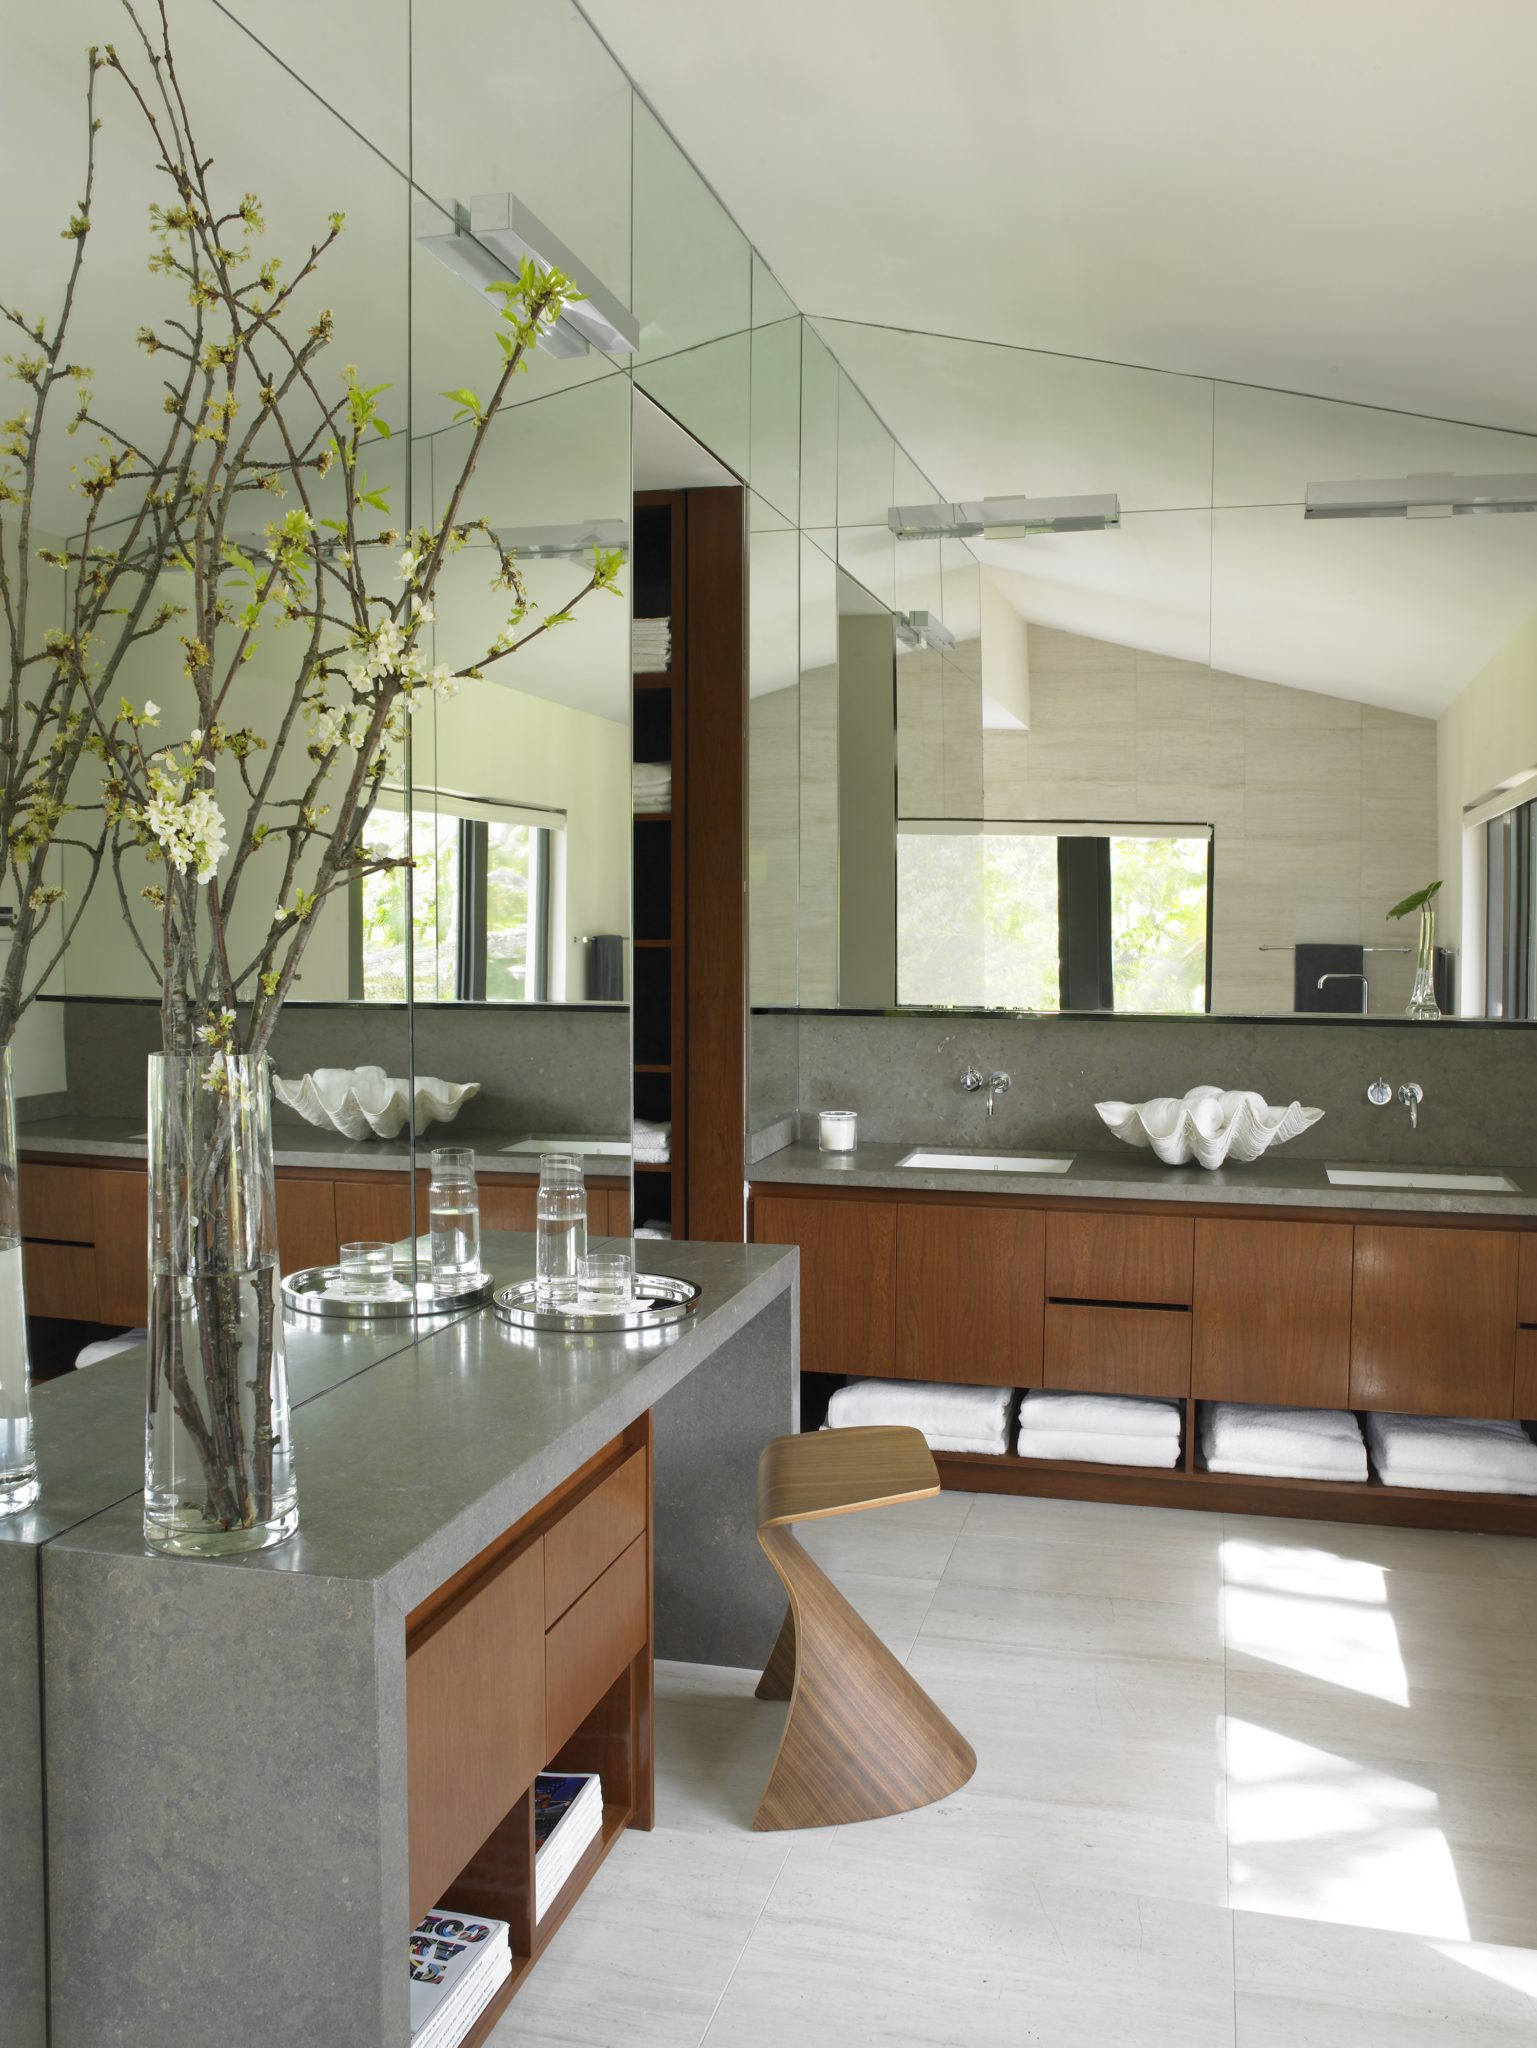 South Florida, mirrored master bath with grey stone countertops - simplicity, warmth, beauty and function. by Michael Wolk Design Associates